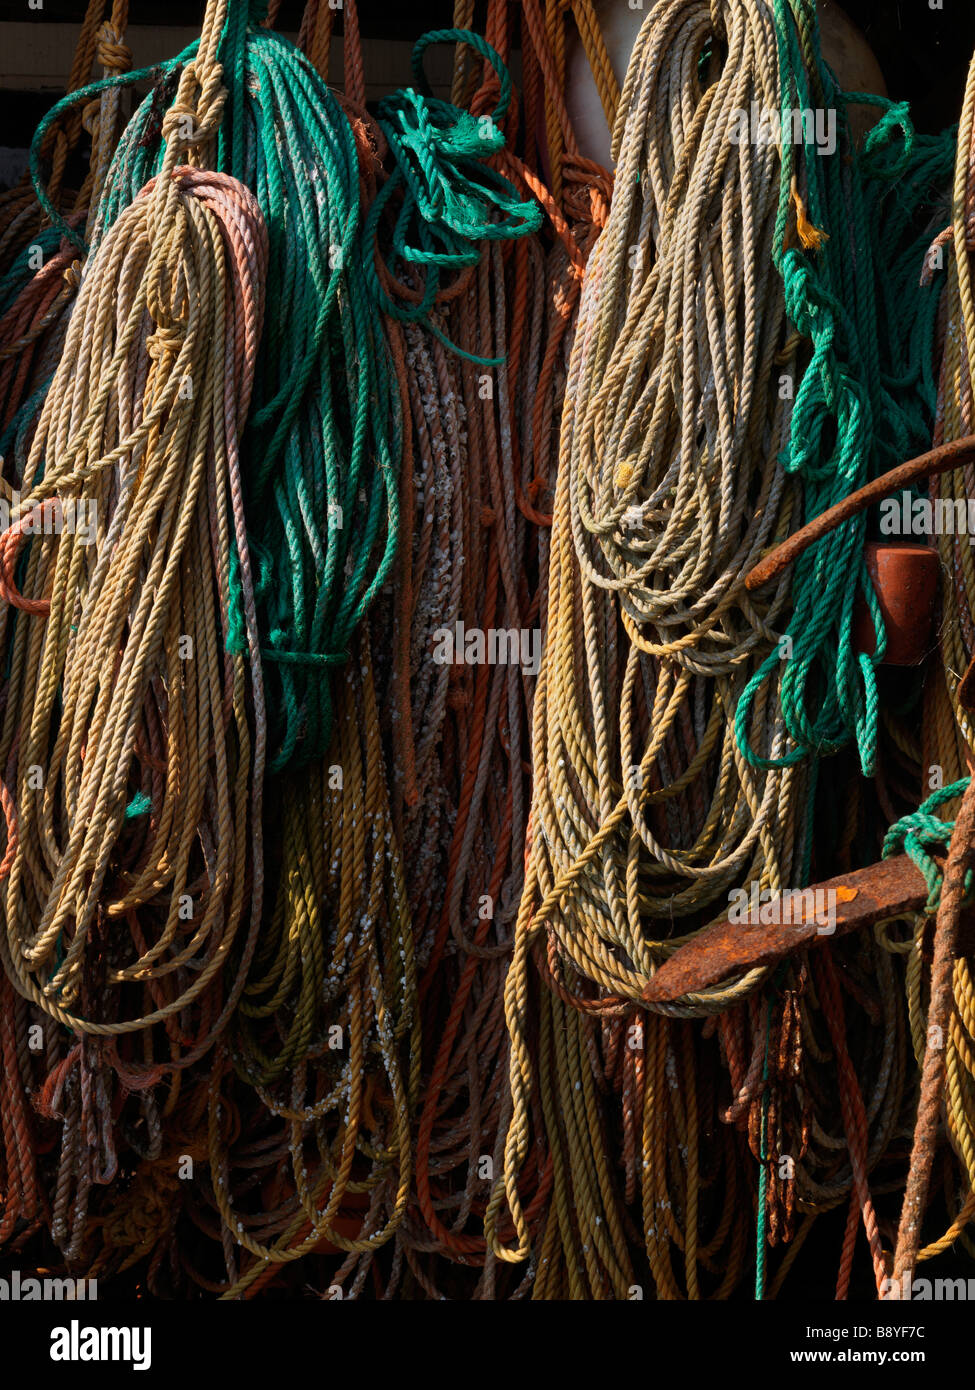 Fishing equipment hanging on a wall. - Stock Image